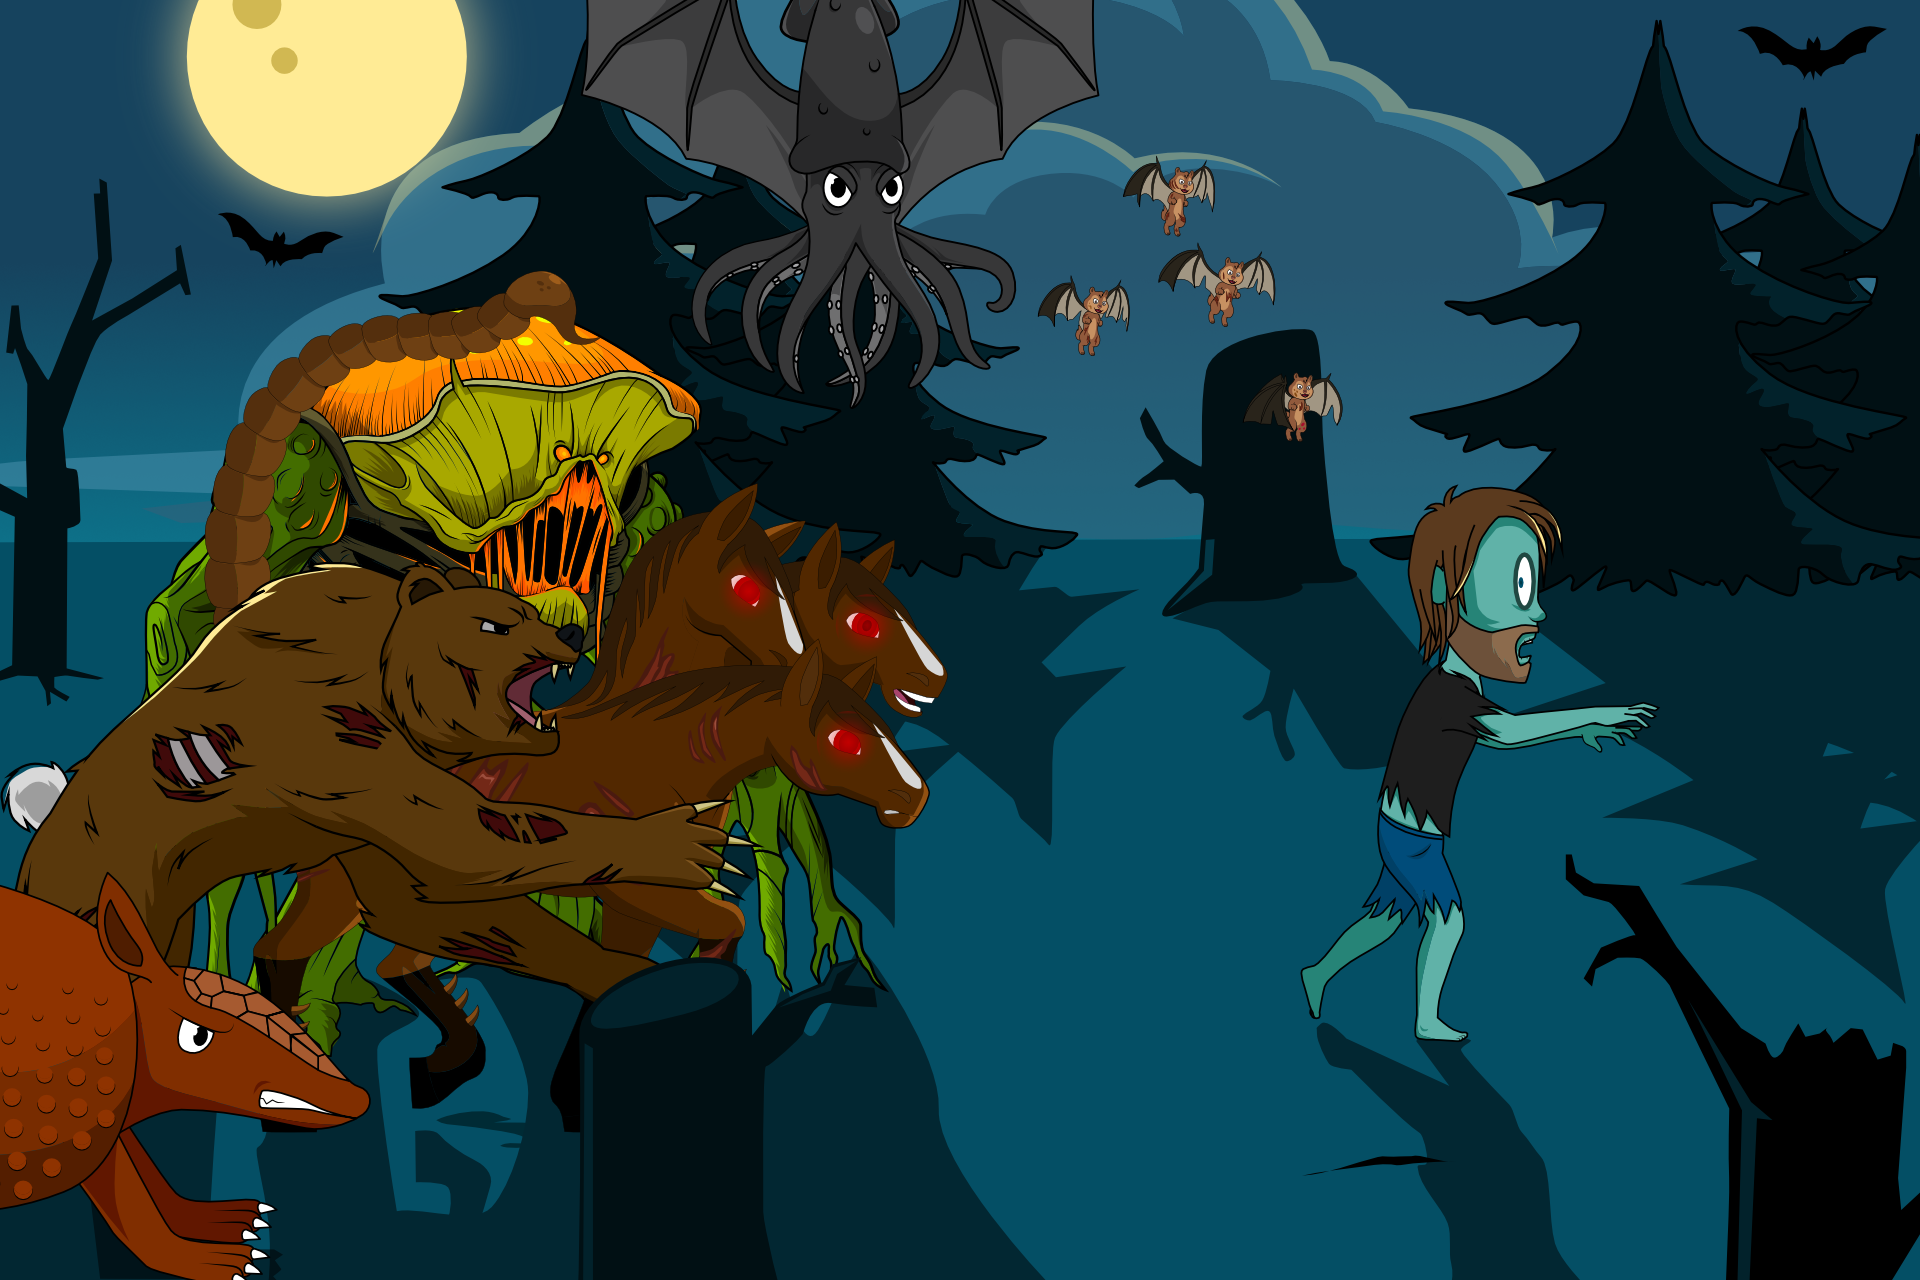 Yaki' the zombie running from a wide variety of post-apocalyptic creatures including a werebear, flying squid, scorpion-tailed horse, and more